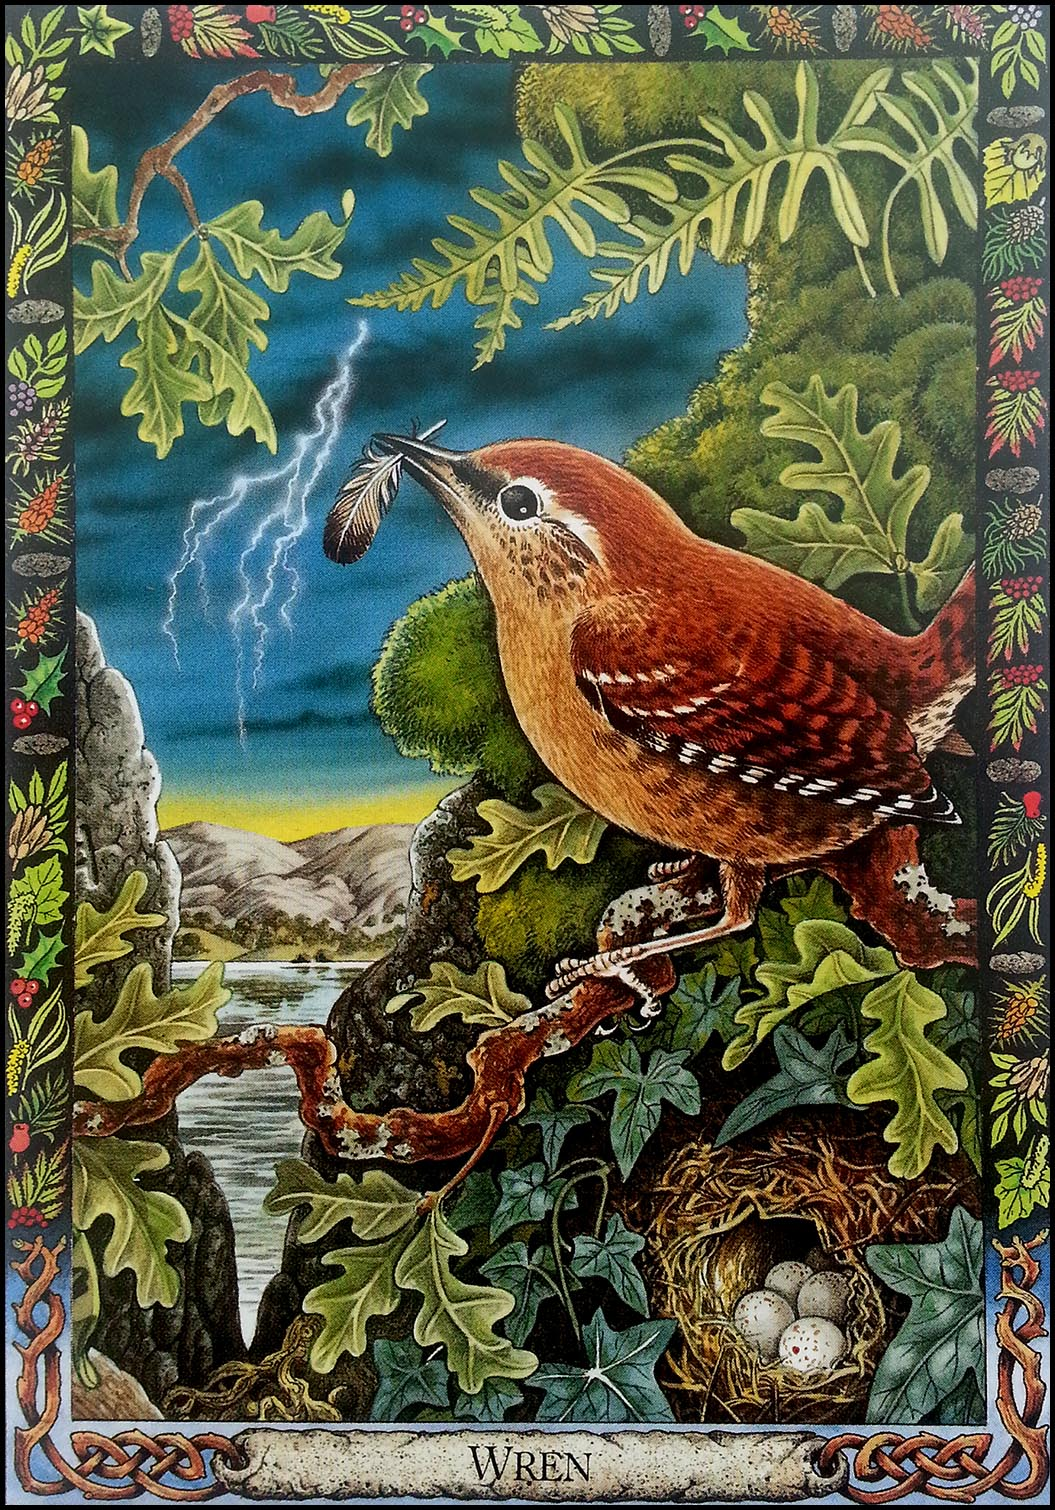 'Wren' Animal Druid Animal Oracle Card